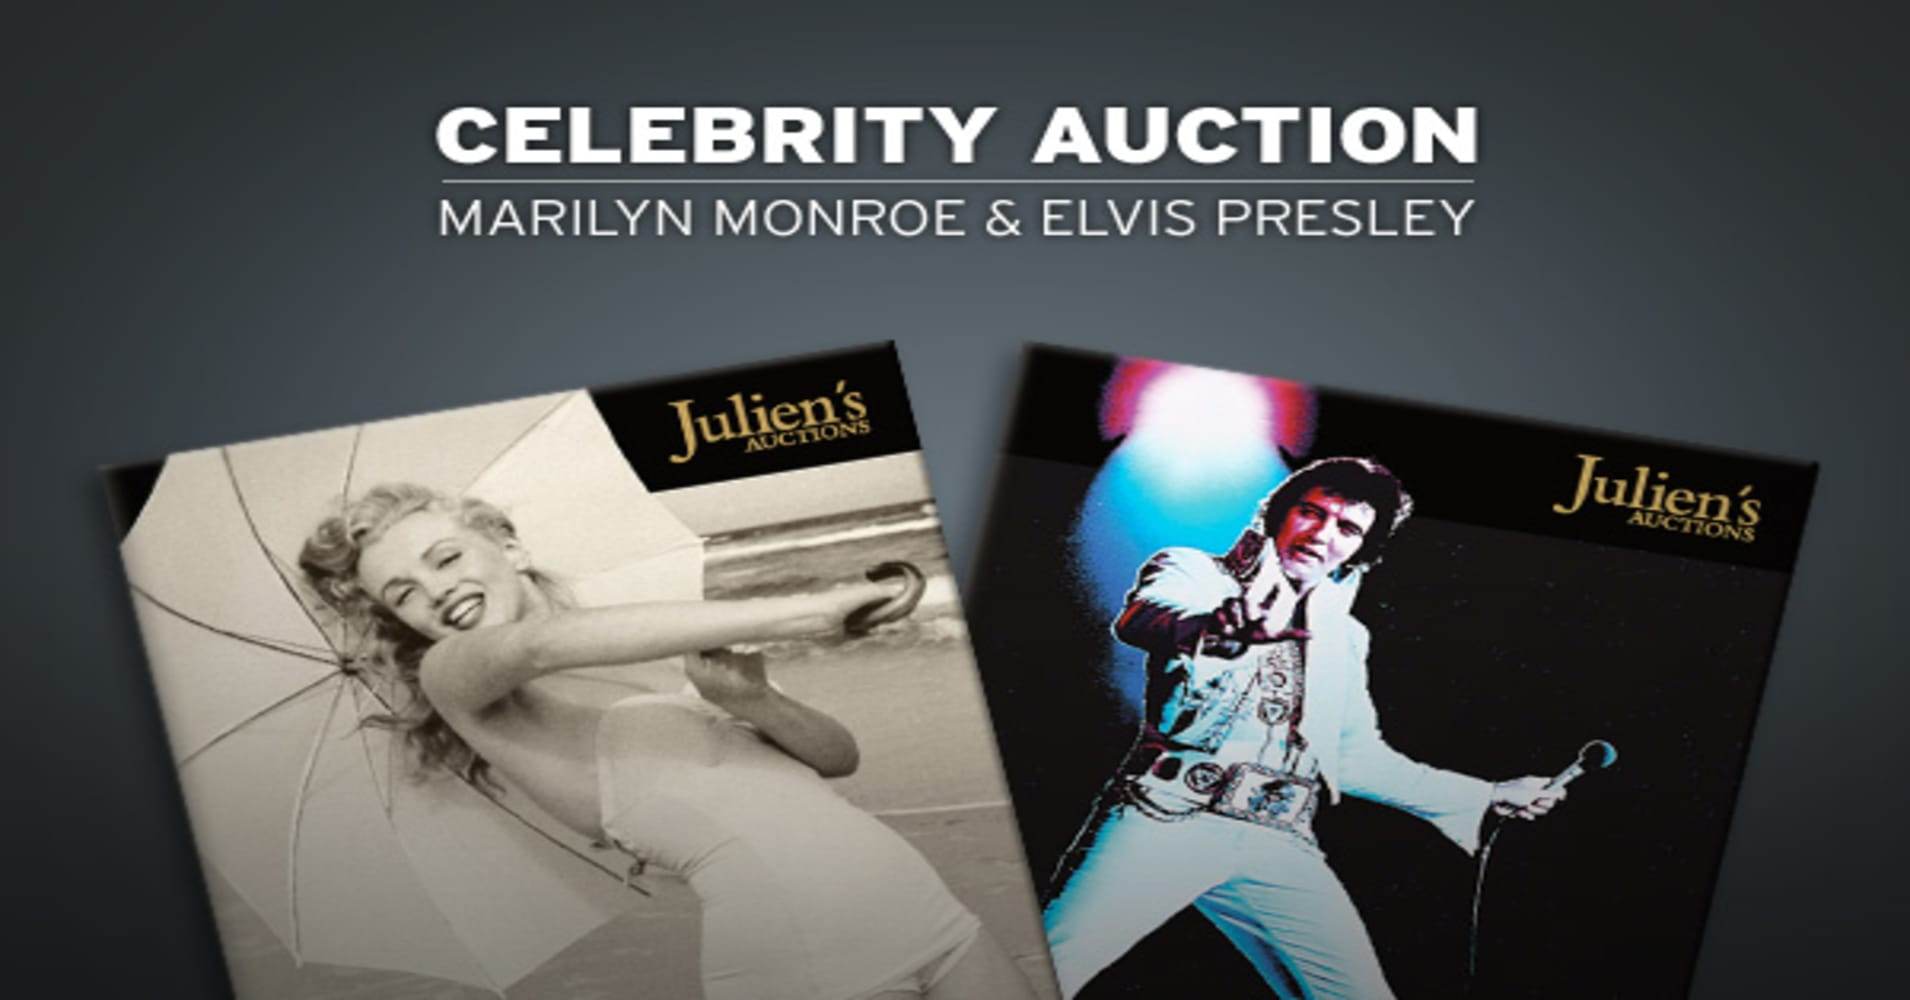 Elvis Marilyn Monroe Celebrity Auction Marilyn Monroe Elvis Presley